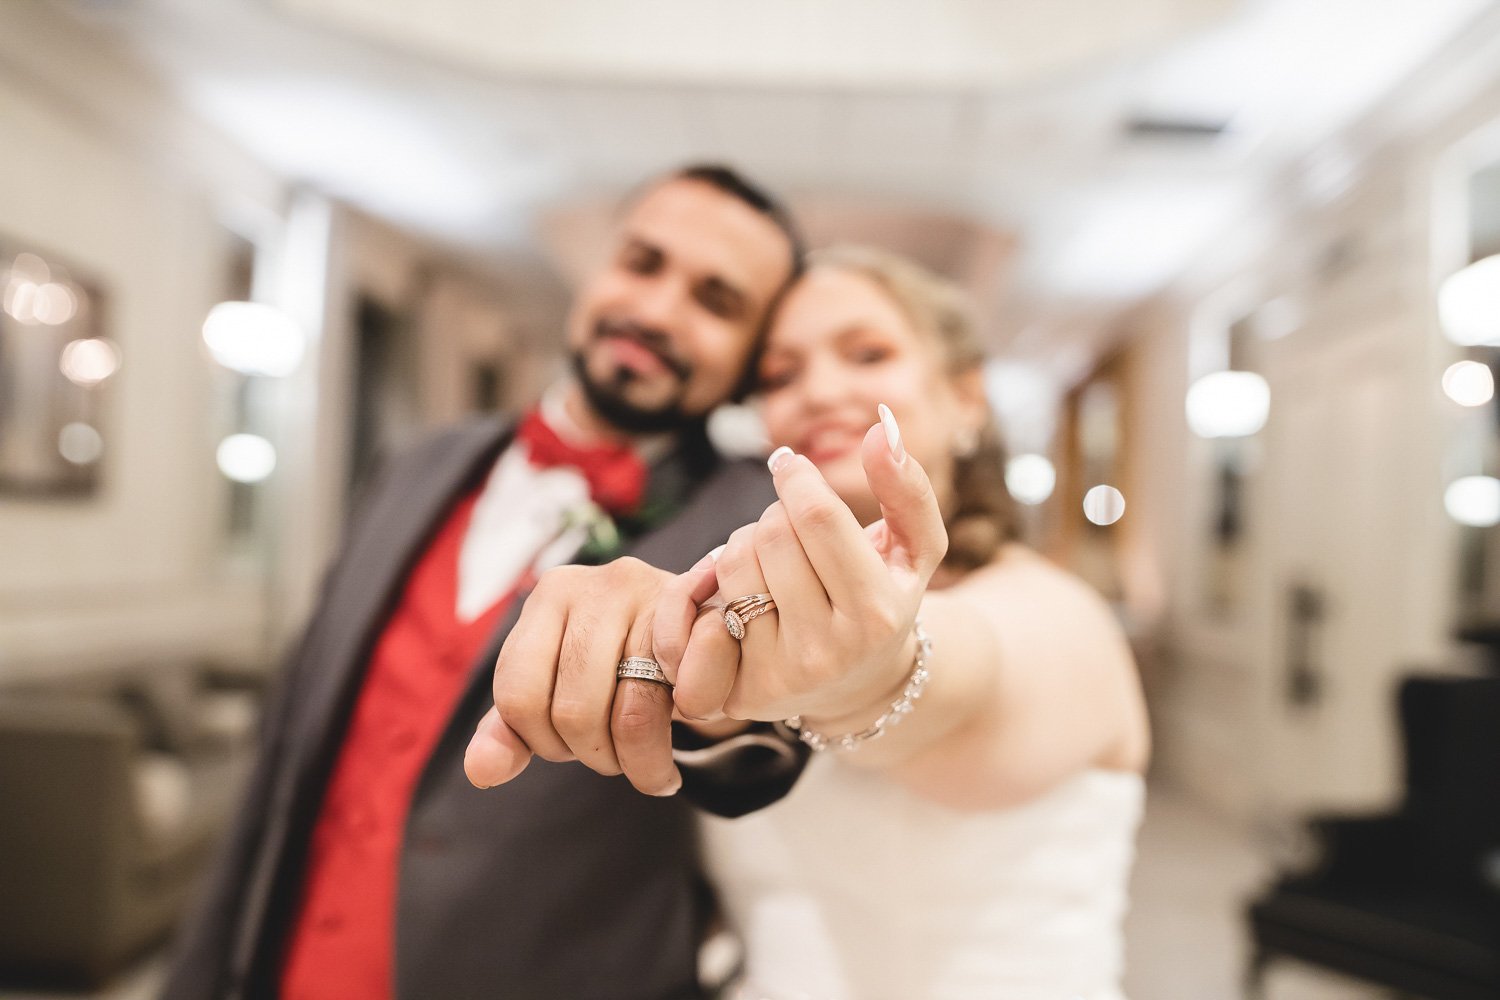 Wedding Photographers Chicago | Our Photographers Are Responsive